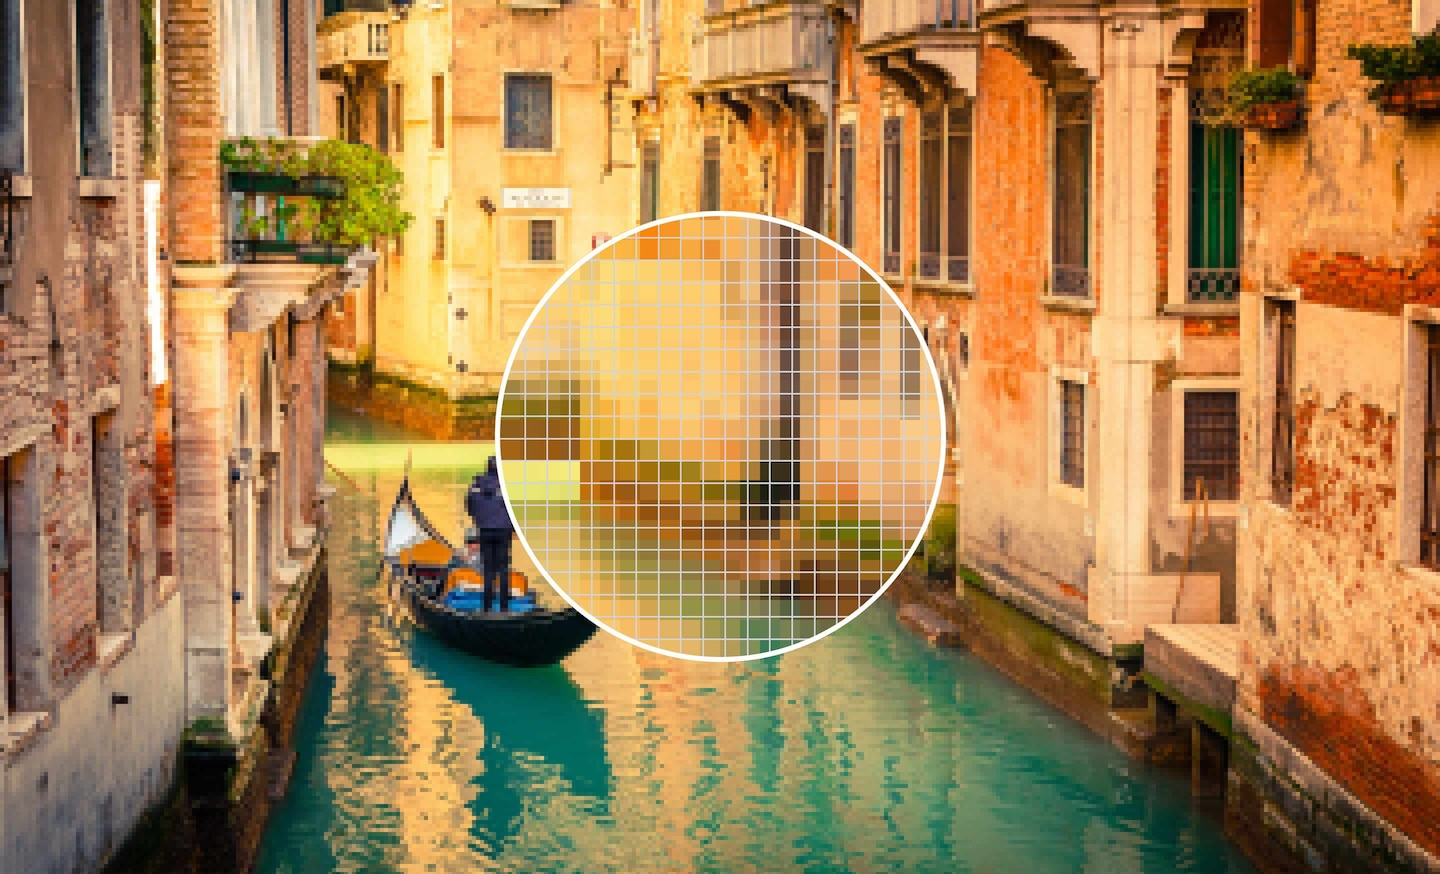 4K Ultra HD image vs Full HD image of a venetian canal